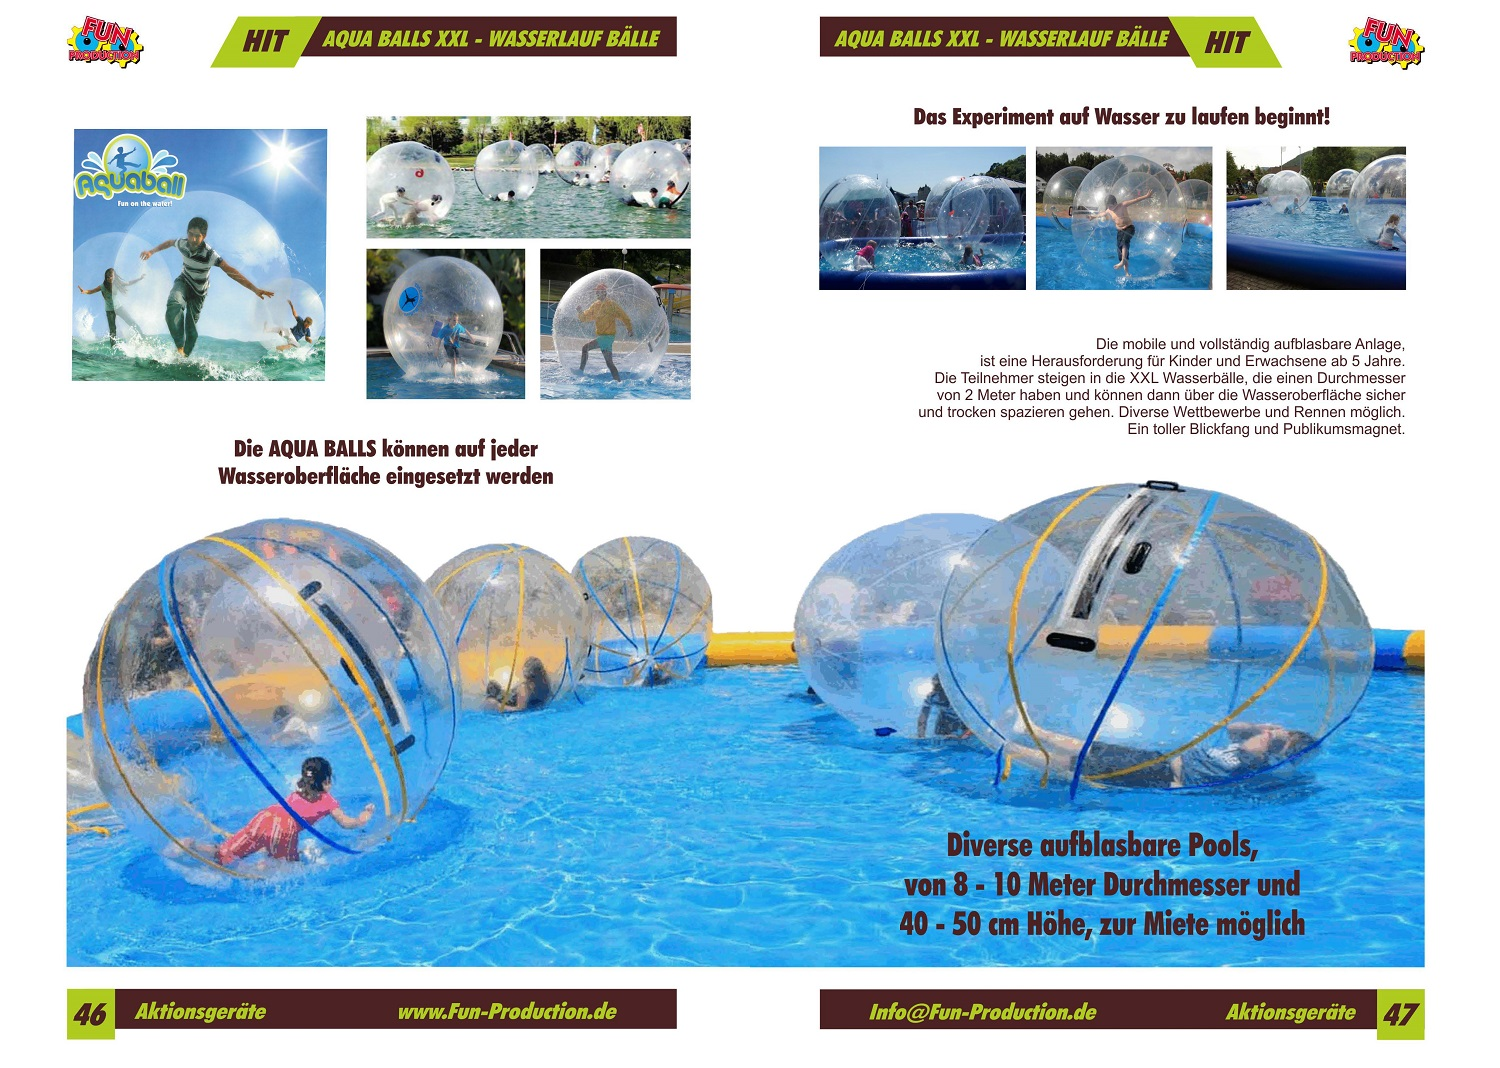 Aqua Balls Fun Production GmbH